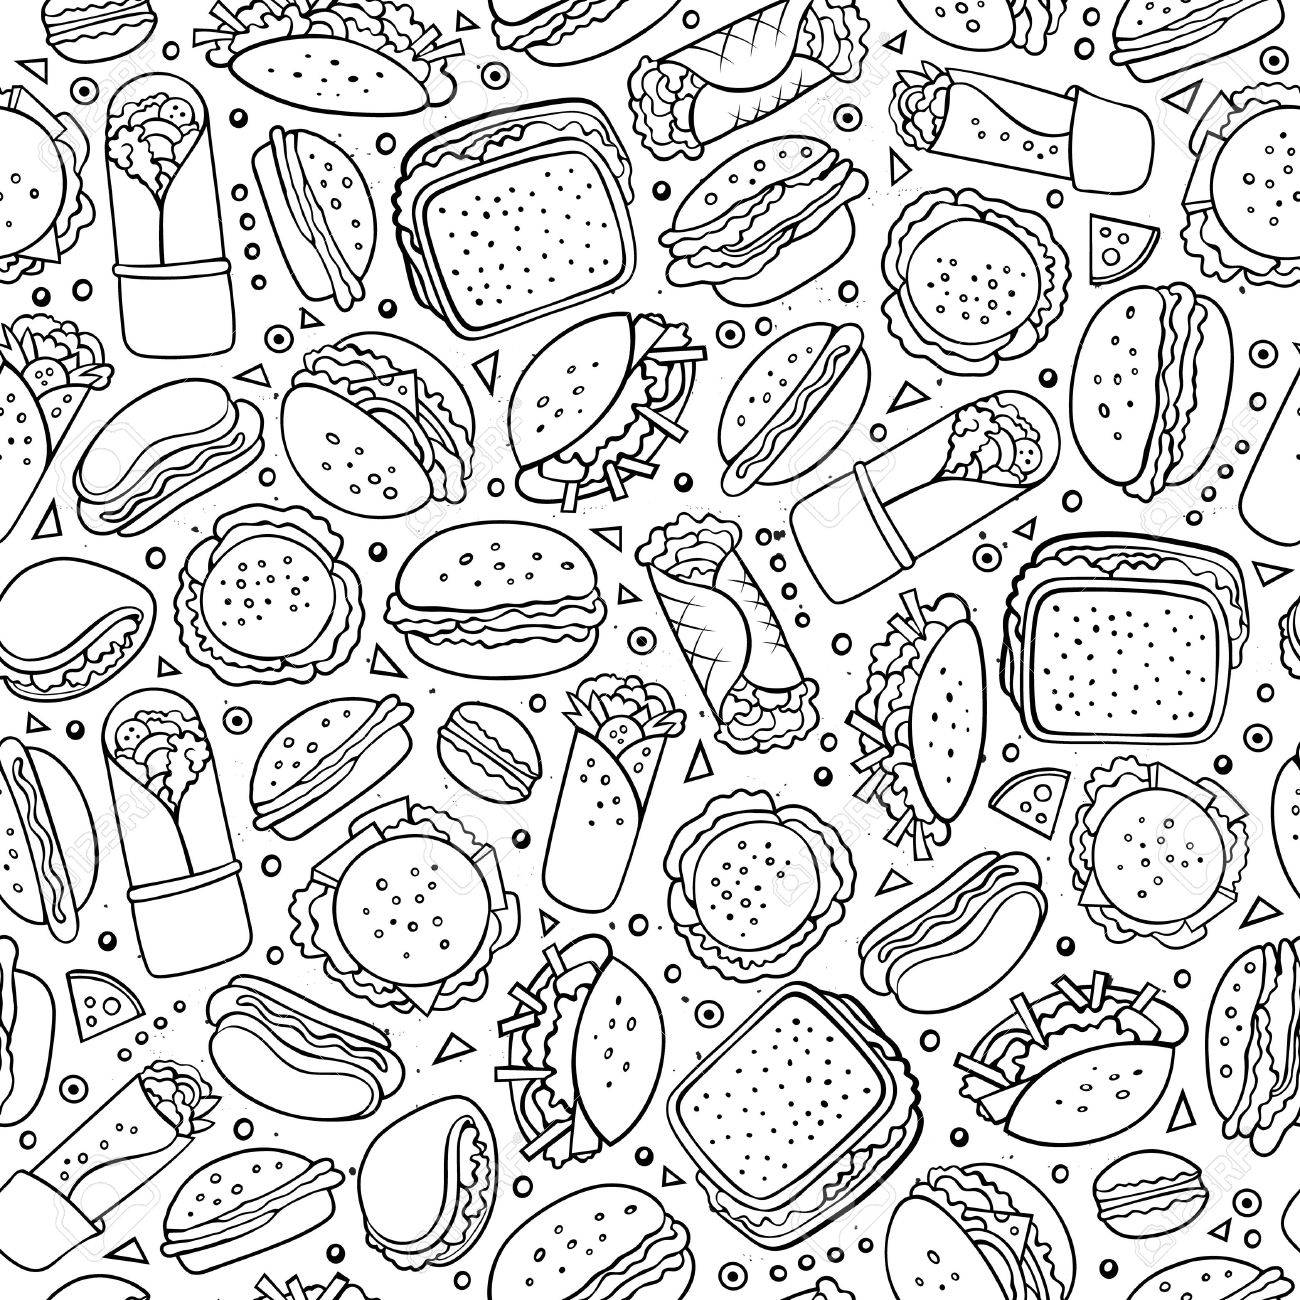 Cartoon cute hand drawn Fast food seamless pattern. Line art with lots of objects background. Endless funny vector illustration. Sketch backdrop with fastfood symbols and items - 61494522